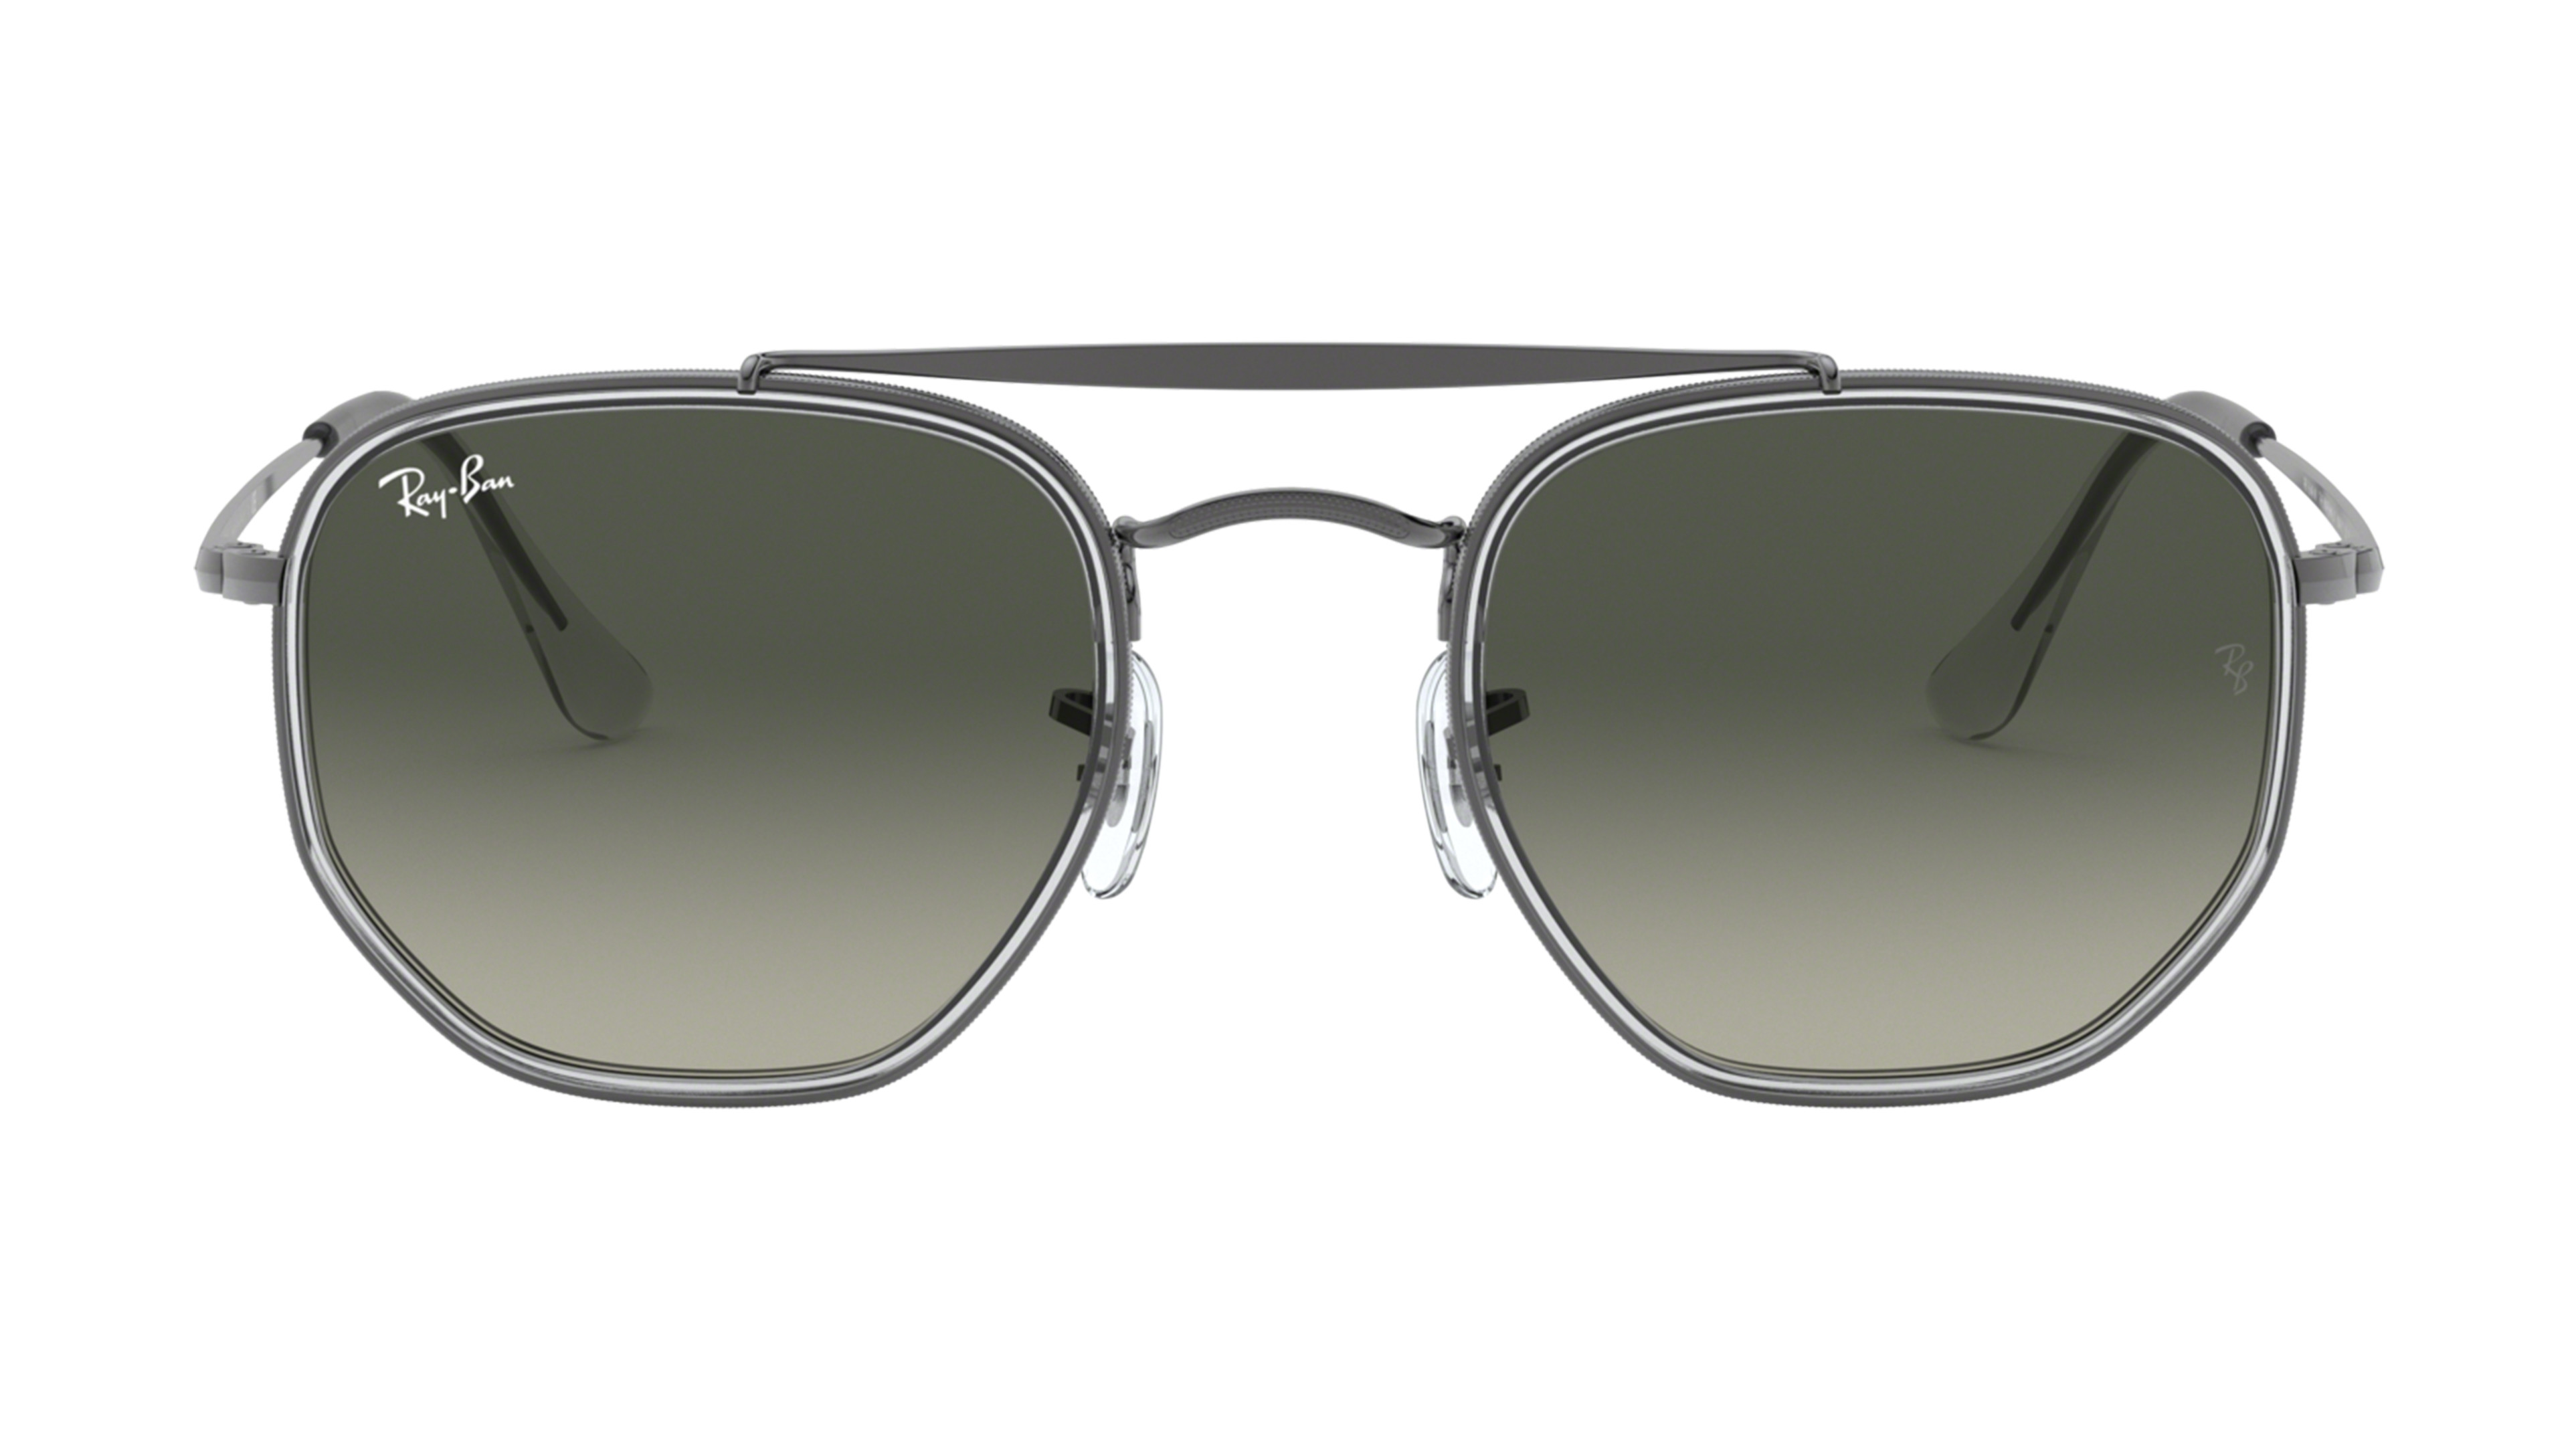 8056597073219-front-Ray-Ban-0RB3648M-004-71-The-Marshal-2